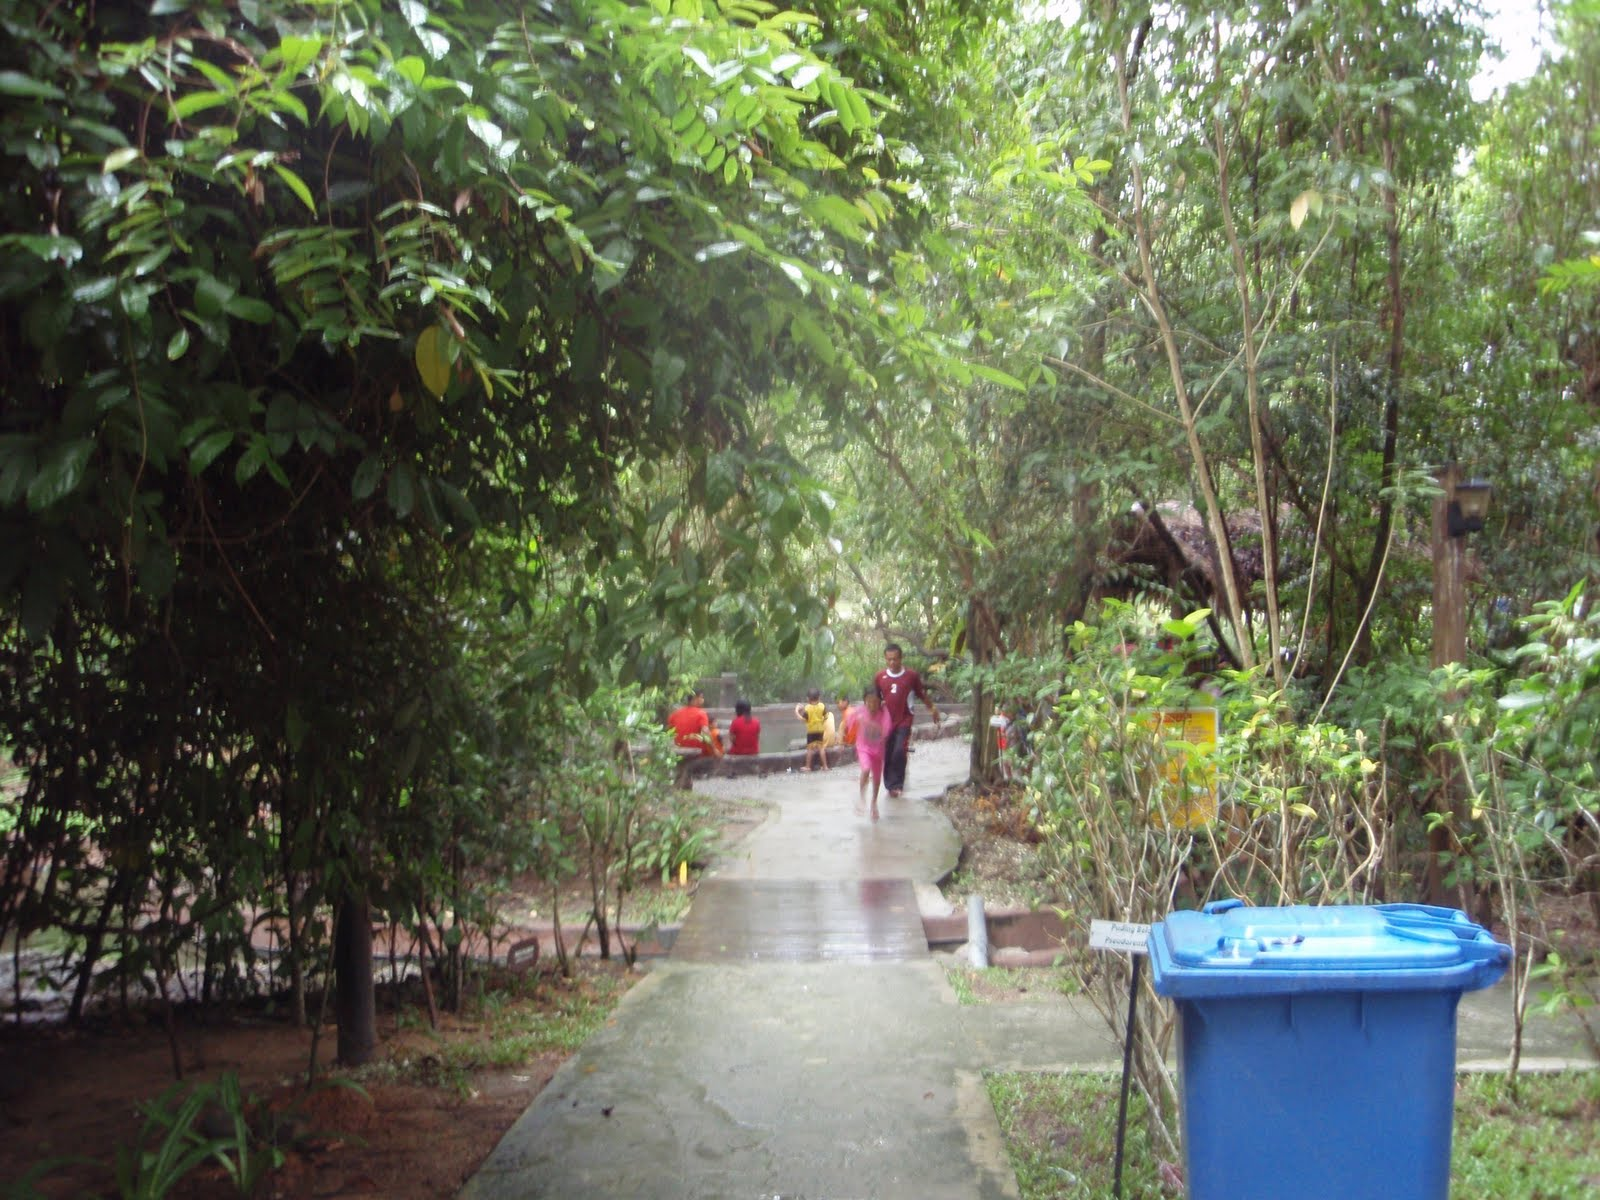 Sungai klah hot springs - The Entrance Ticket Is Only Rm10 For Whole Day Saturday Sunday And Public Holiday The Price Is Rm15 The Working Hour Of The Resort Is From 9am To 10pm